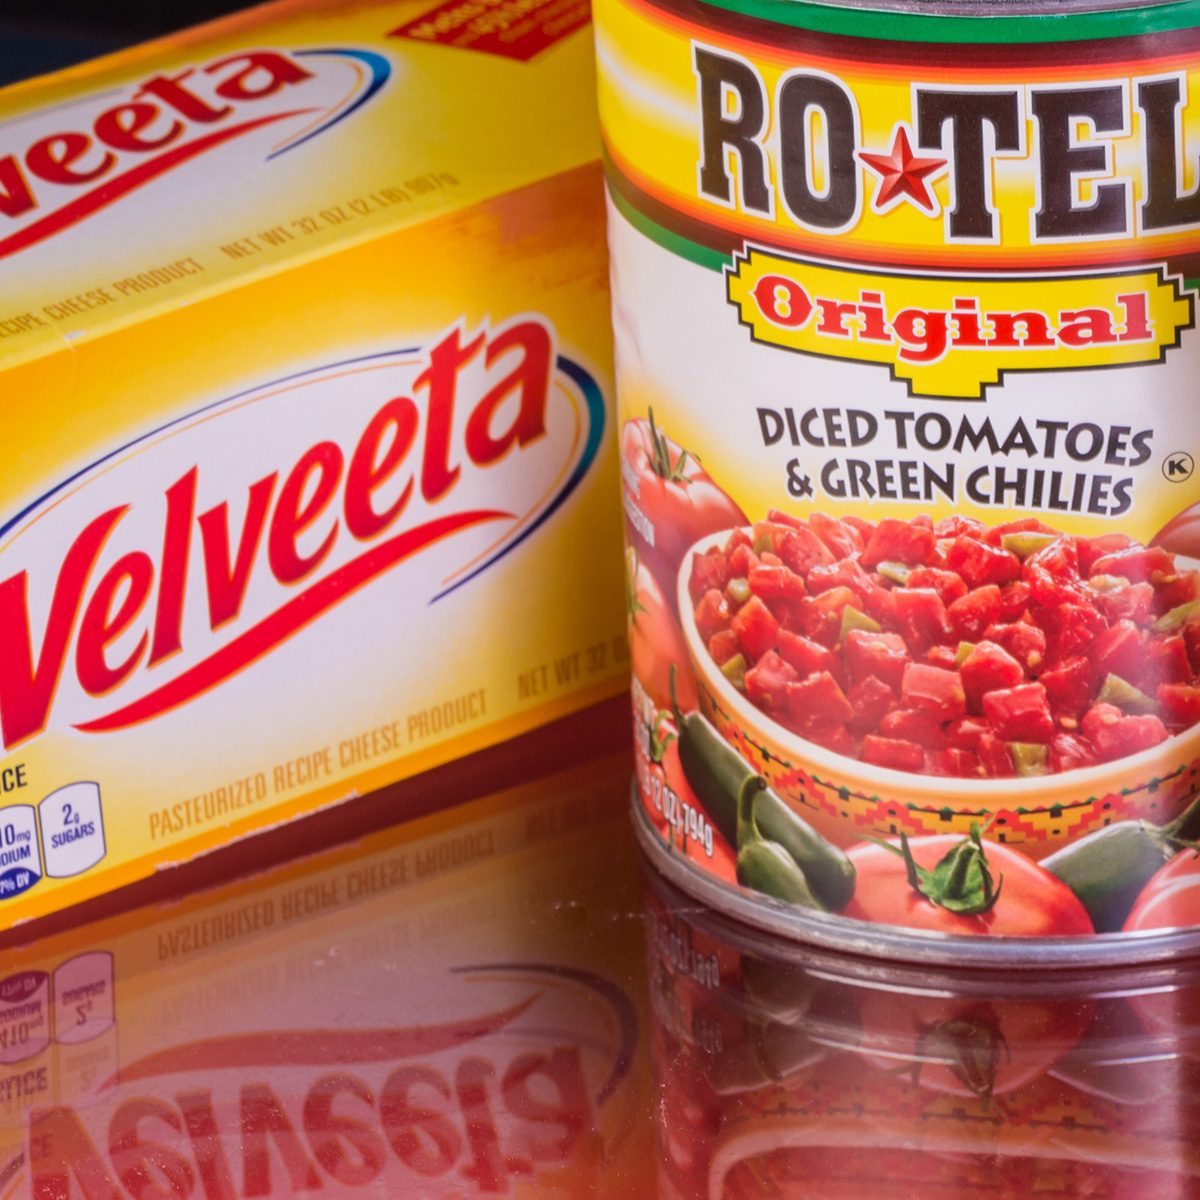 Velveeta Cheese and Ro Tel Diced Tomatoes with Green Chilies are ingredients for the popular Ro Tel Queso Dip. With Habanero Peppers is a spicy option